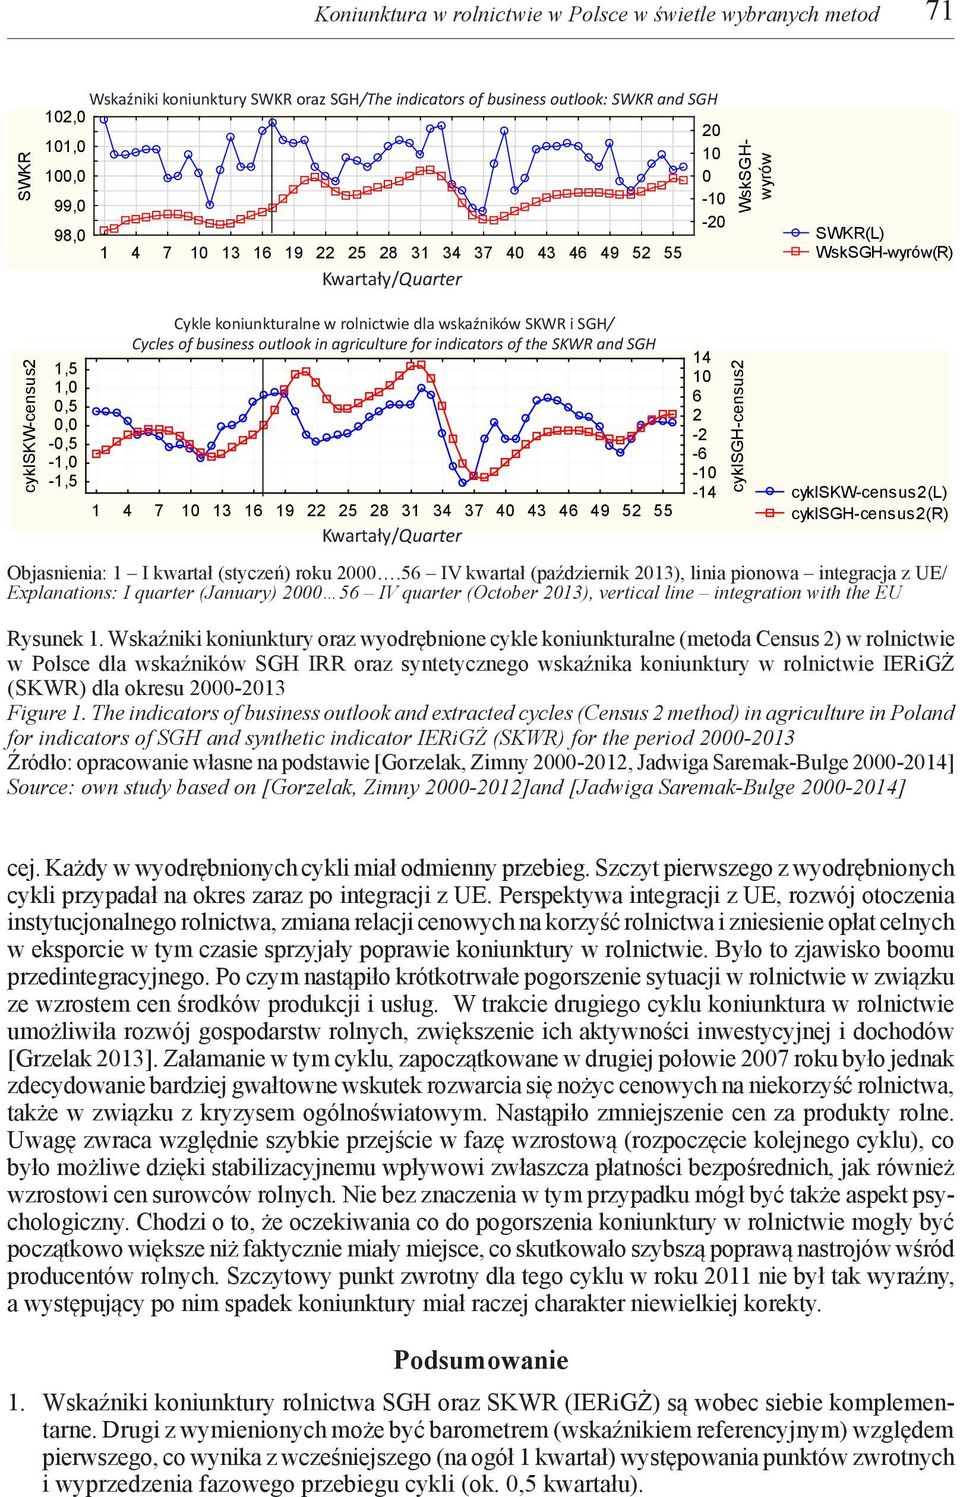 w rolnictwie dla wskaźników SKWR i SGH/ Cycles of business outlook in agriculture koniunktura for indicators 22v*60c of the SKWR and SGH 1 4 7 10 13 16 19 22 25 28 31 34 37 40 43 46 49 52 55